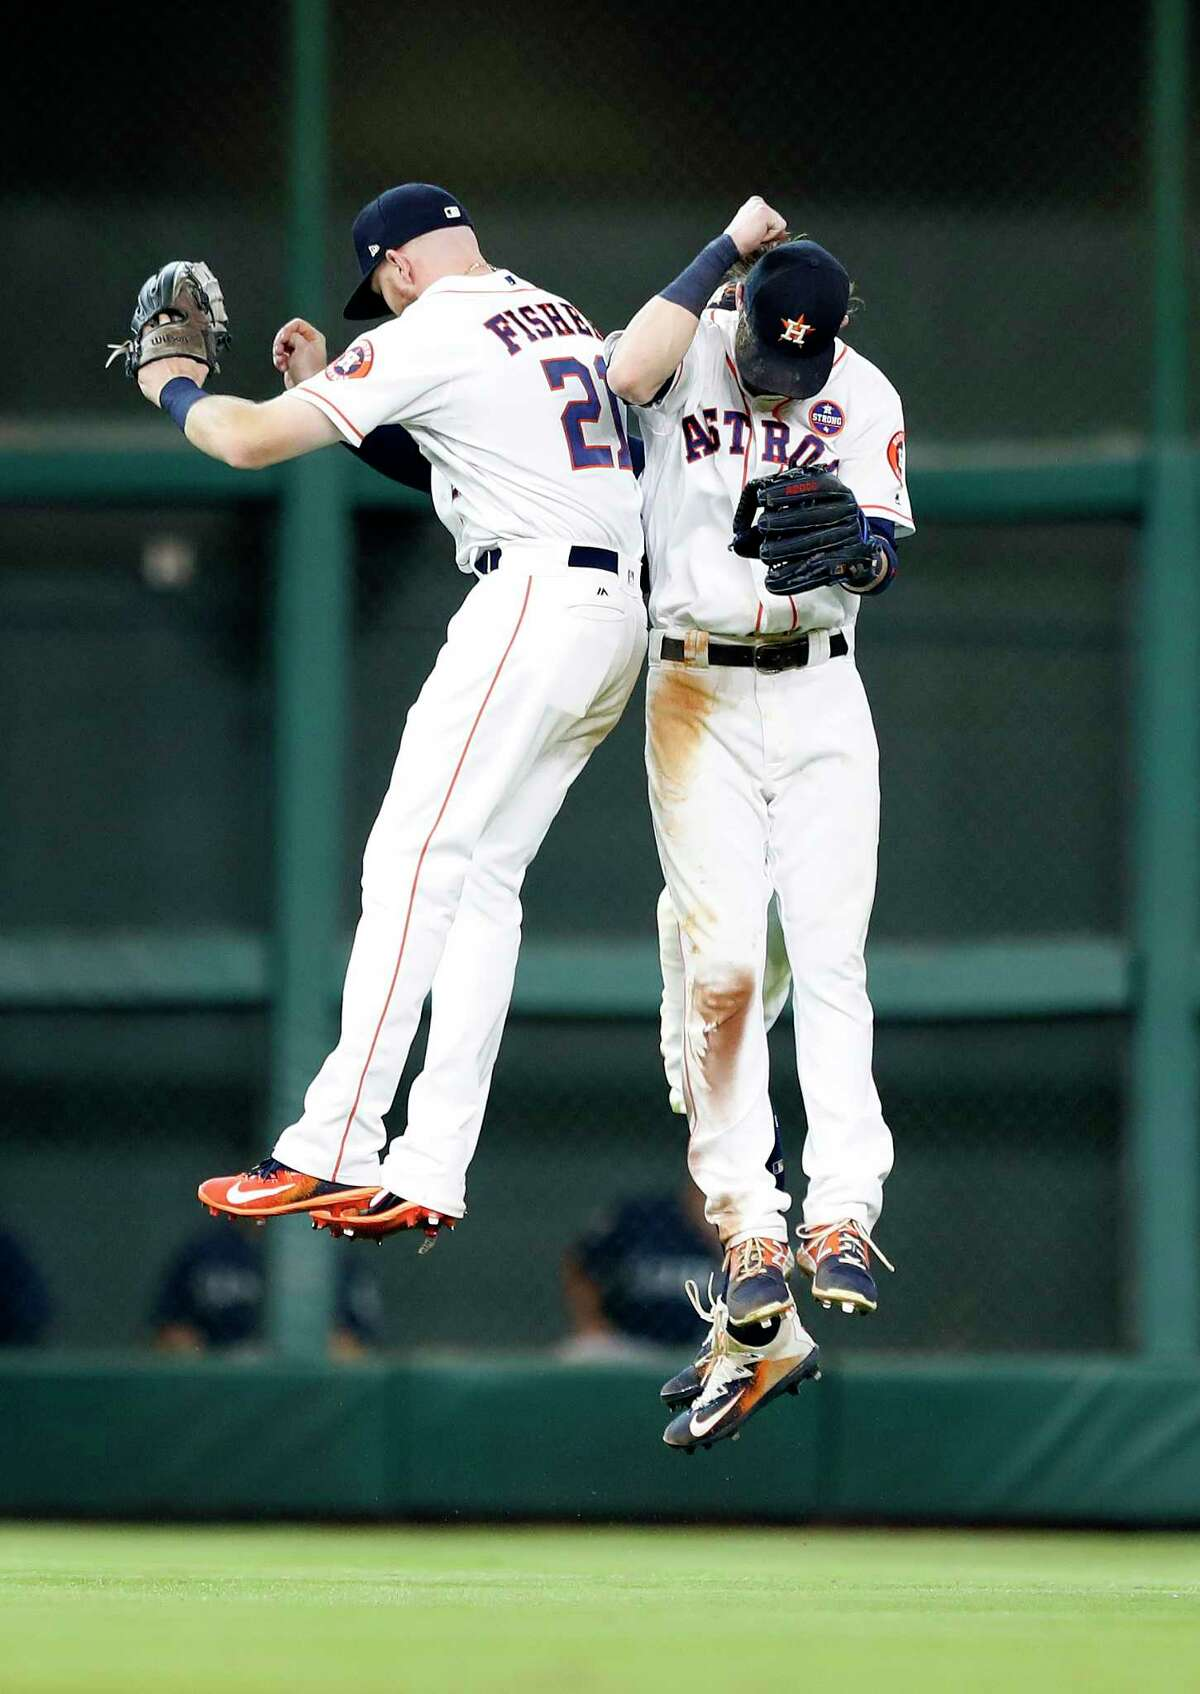 Houston Astros Derek Fisher (21), Josh Reddick (22), and George Springer (4) celebrate after the Astros win 8-6 against the Seattle Mariners during an MLB baseball game at Minute Maid Park, Saturday, Sept. 16, 2017, in Houston.